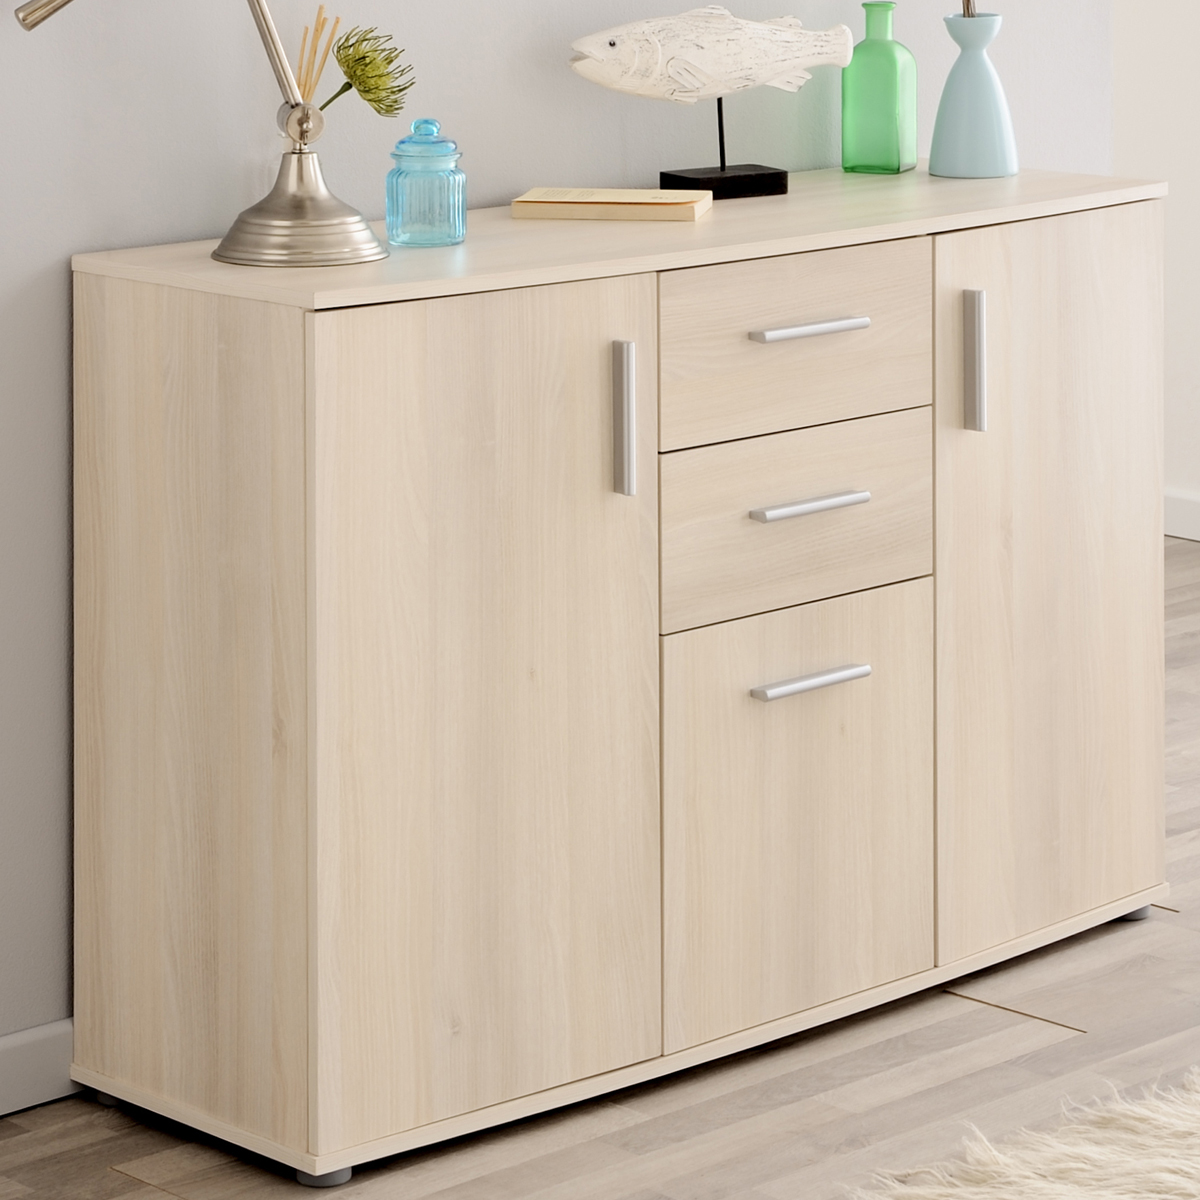 sideboard salto 1 esszimmer anrichte wohnzimmer kommode akazie 3 t ren ebay. Black Bedroom Furniture Sets. Home Design Ideas